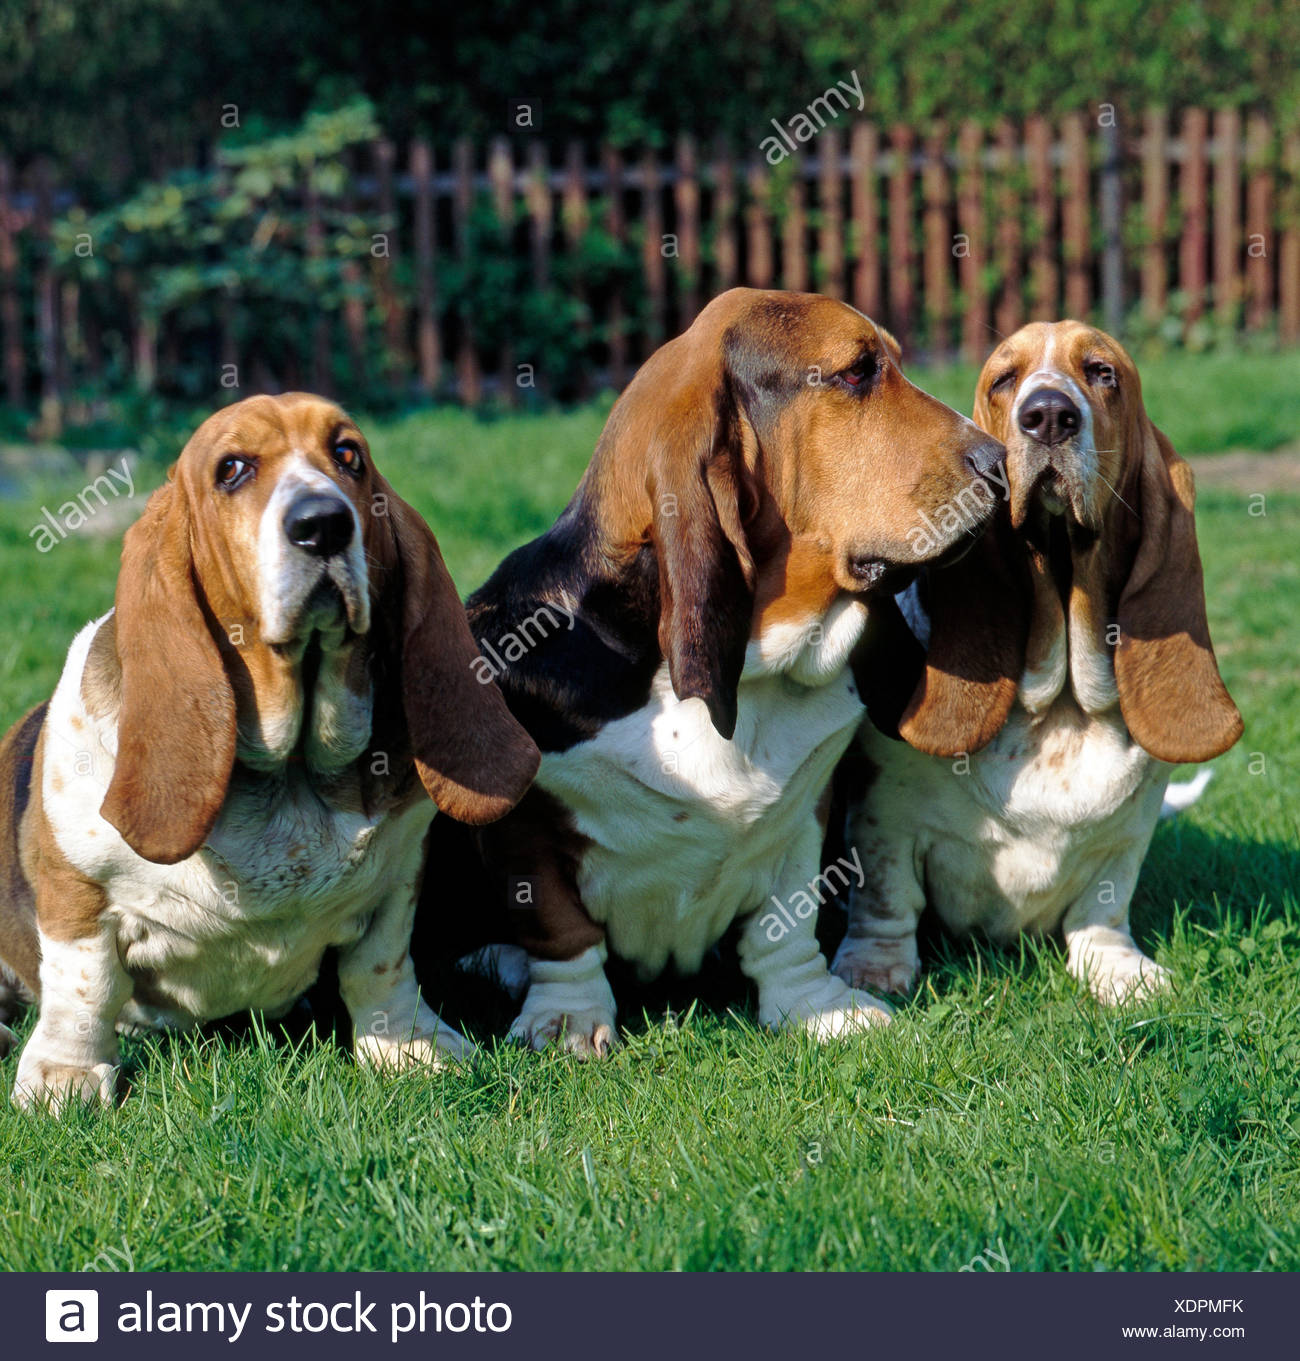 Three bassets Hounds, French hounds with big floppy ears, - Stock Image